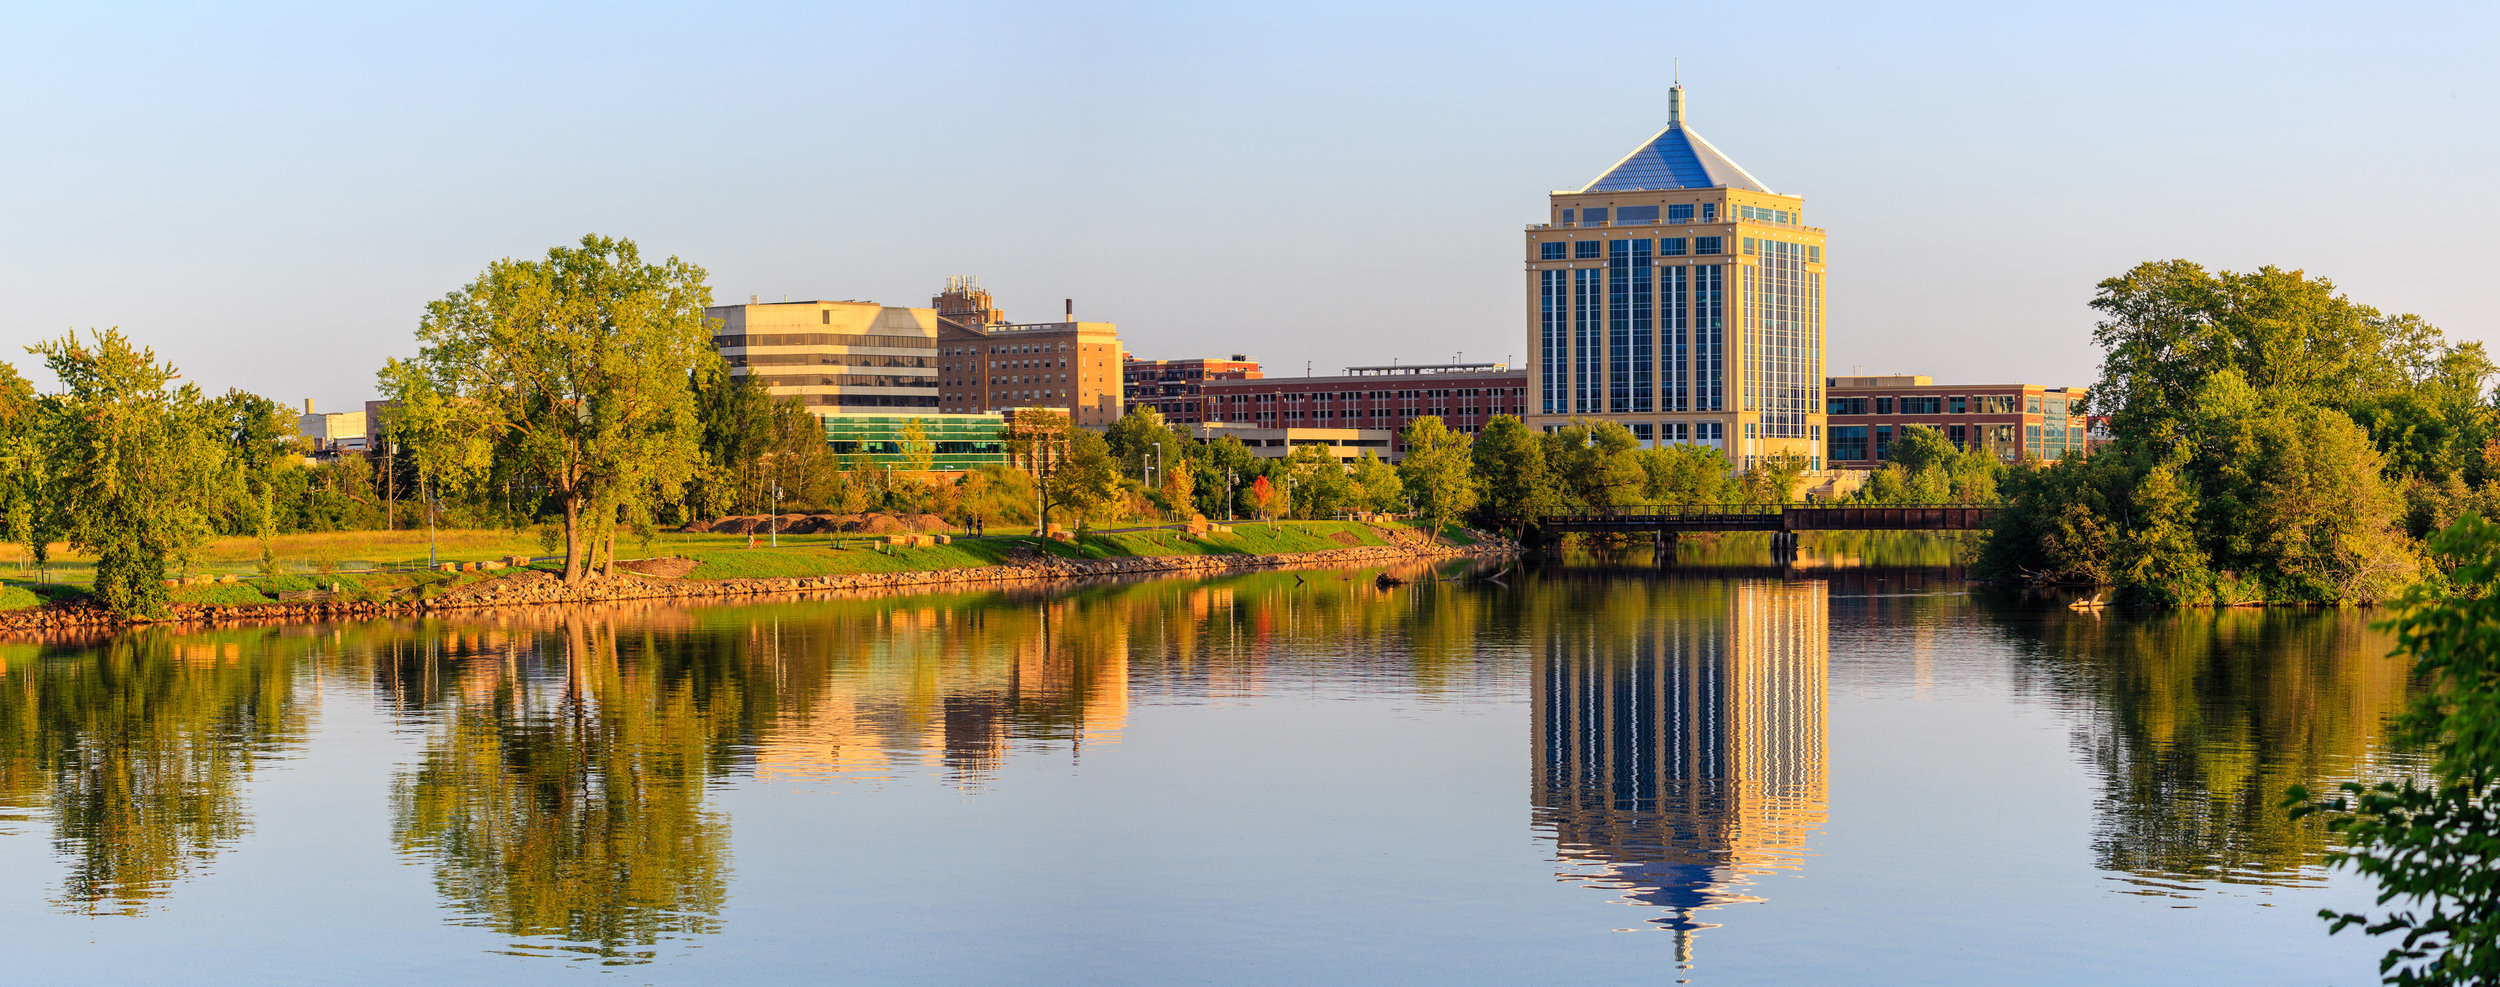 Downtown Wausau, WI cityscape along the Wisconsin River at sunset.